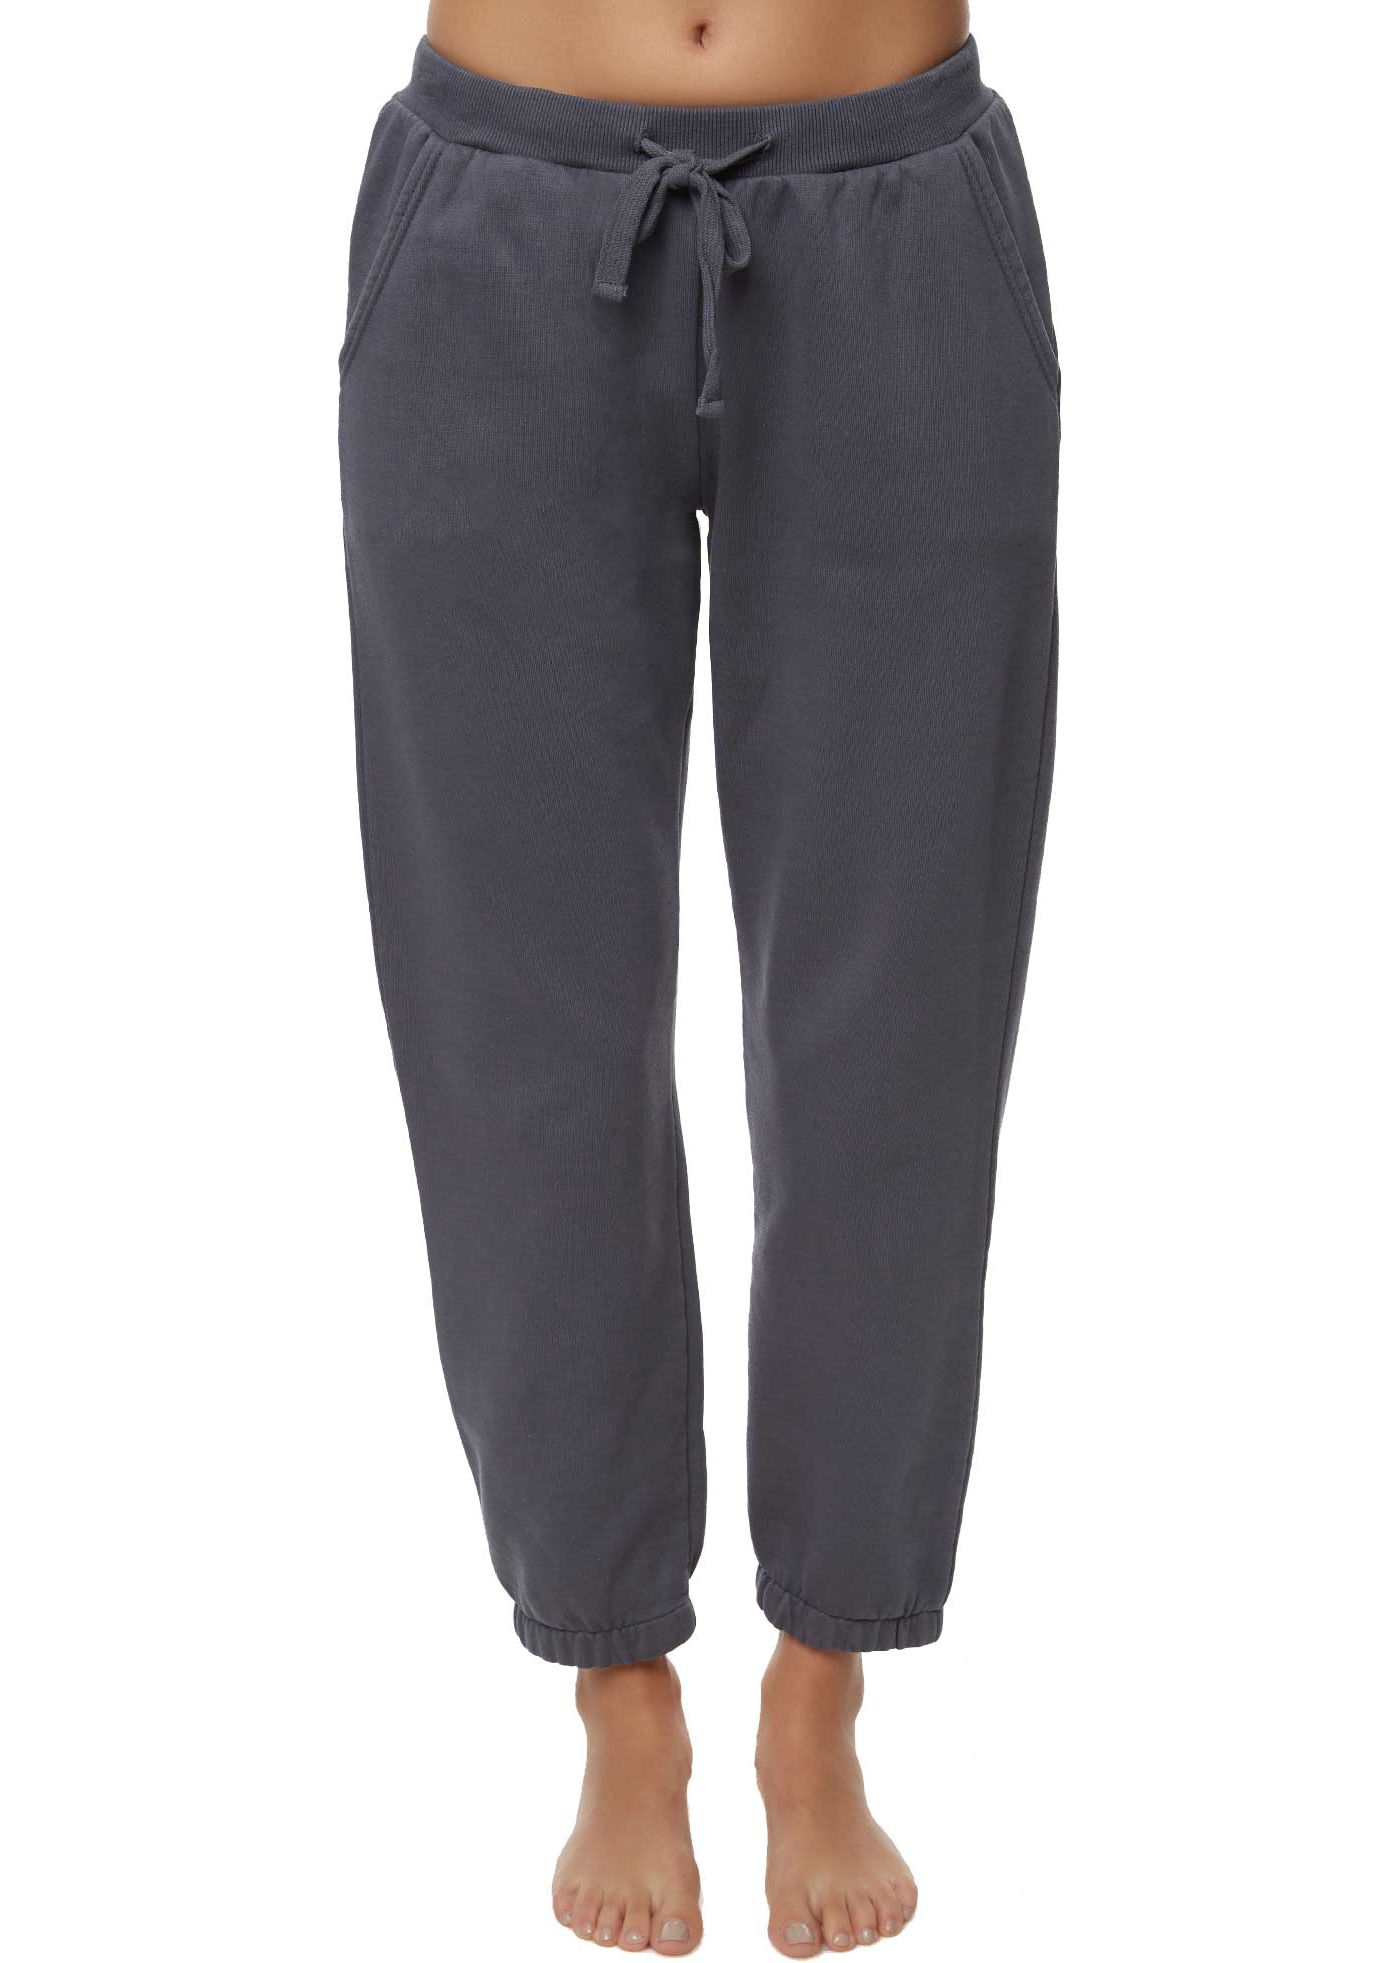 O'Neill Women's Embrace Fleece Pants